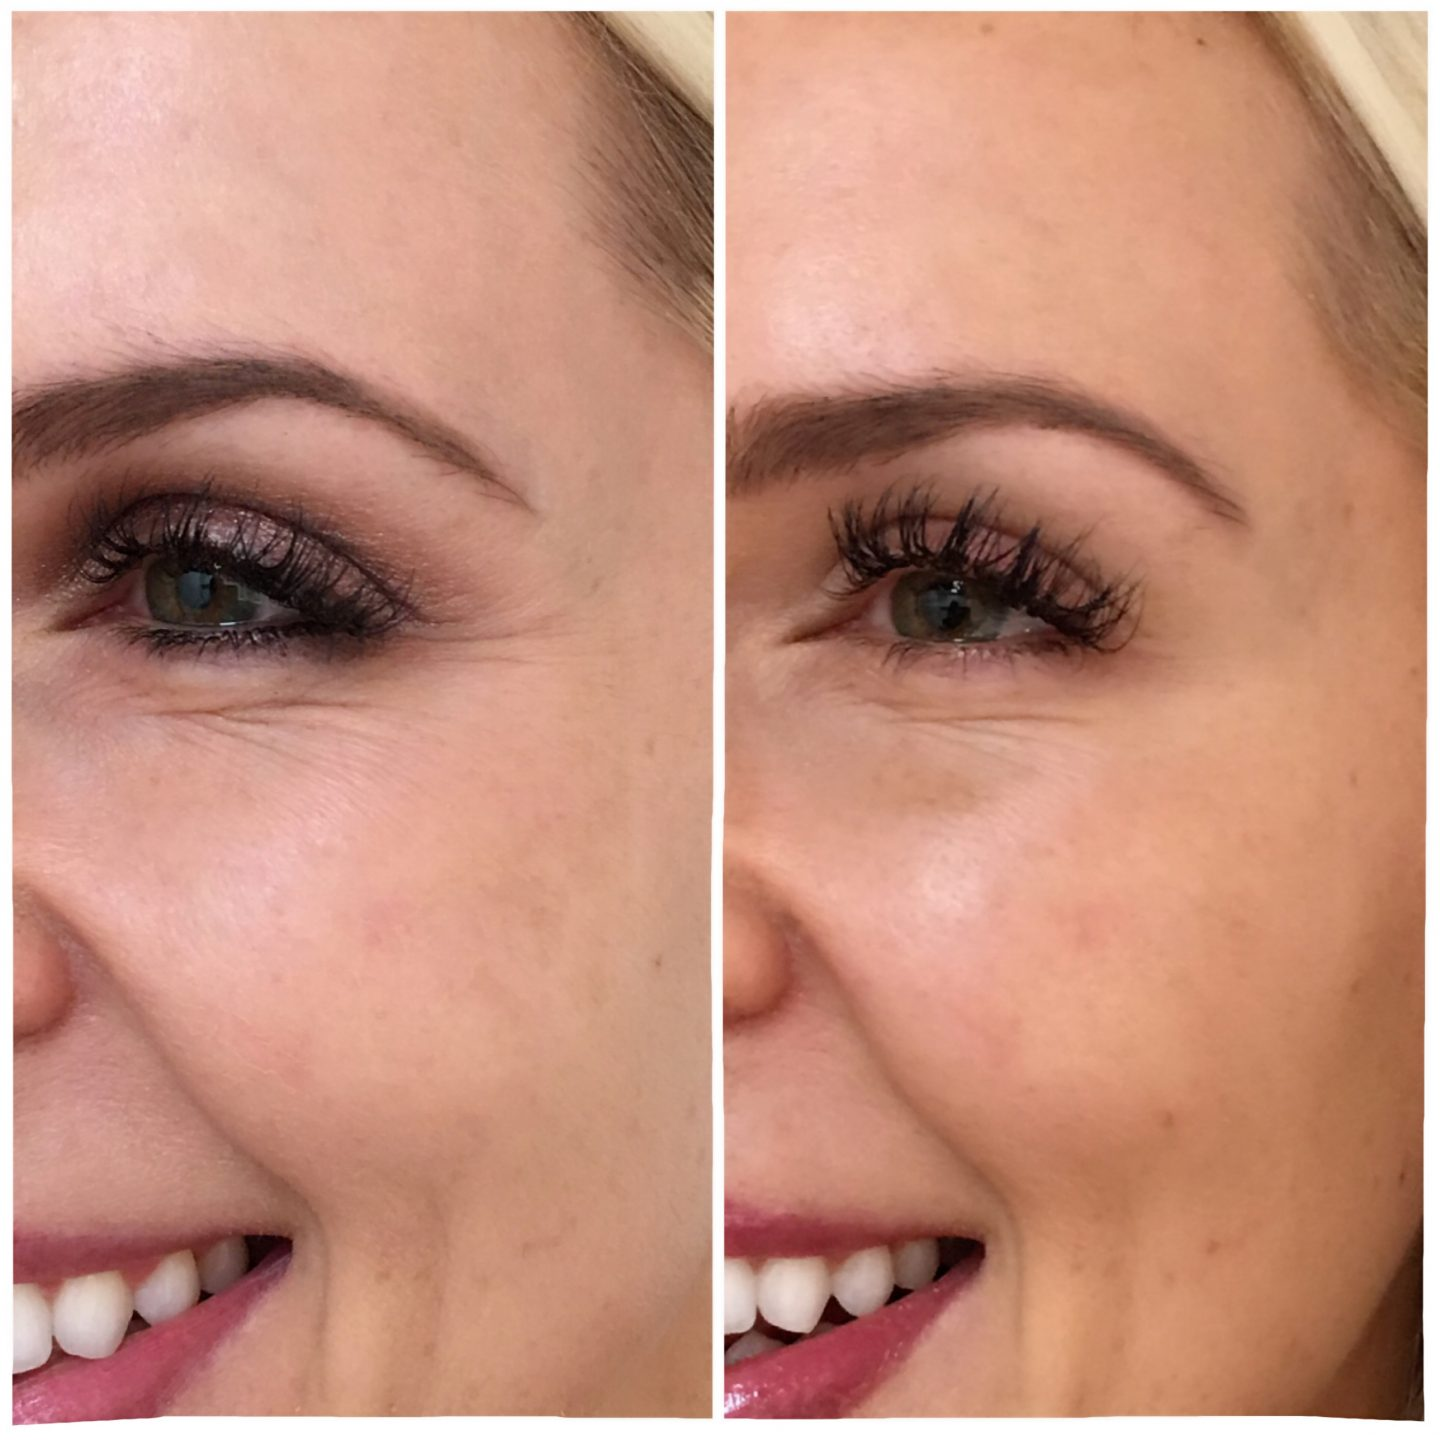 Botox and fillers before and after pictures featured by top US beauty blog Lombard and Fifth